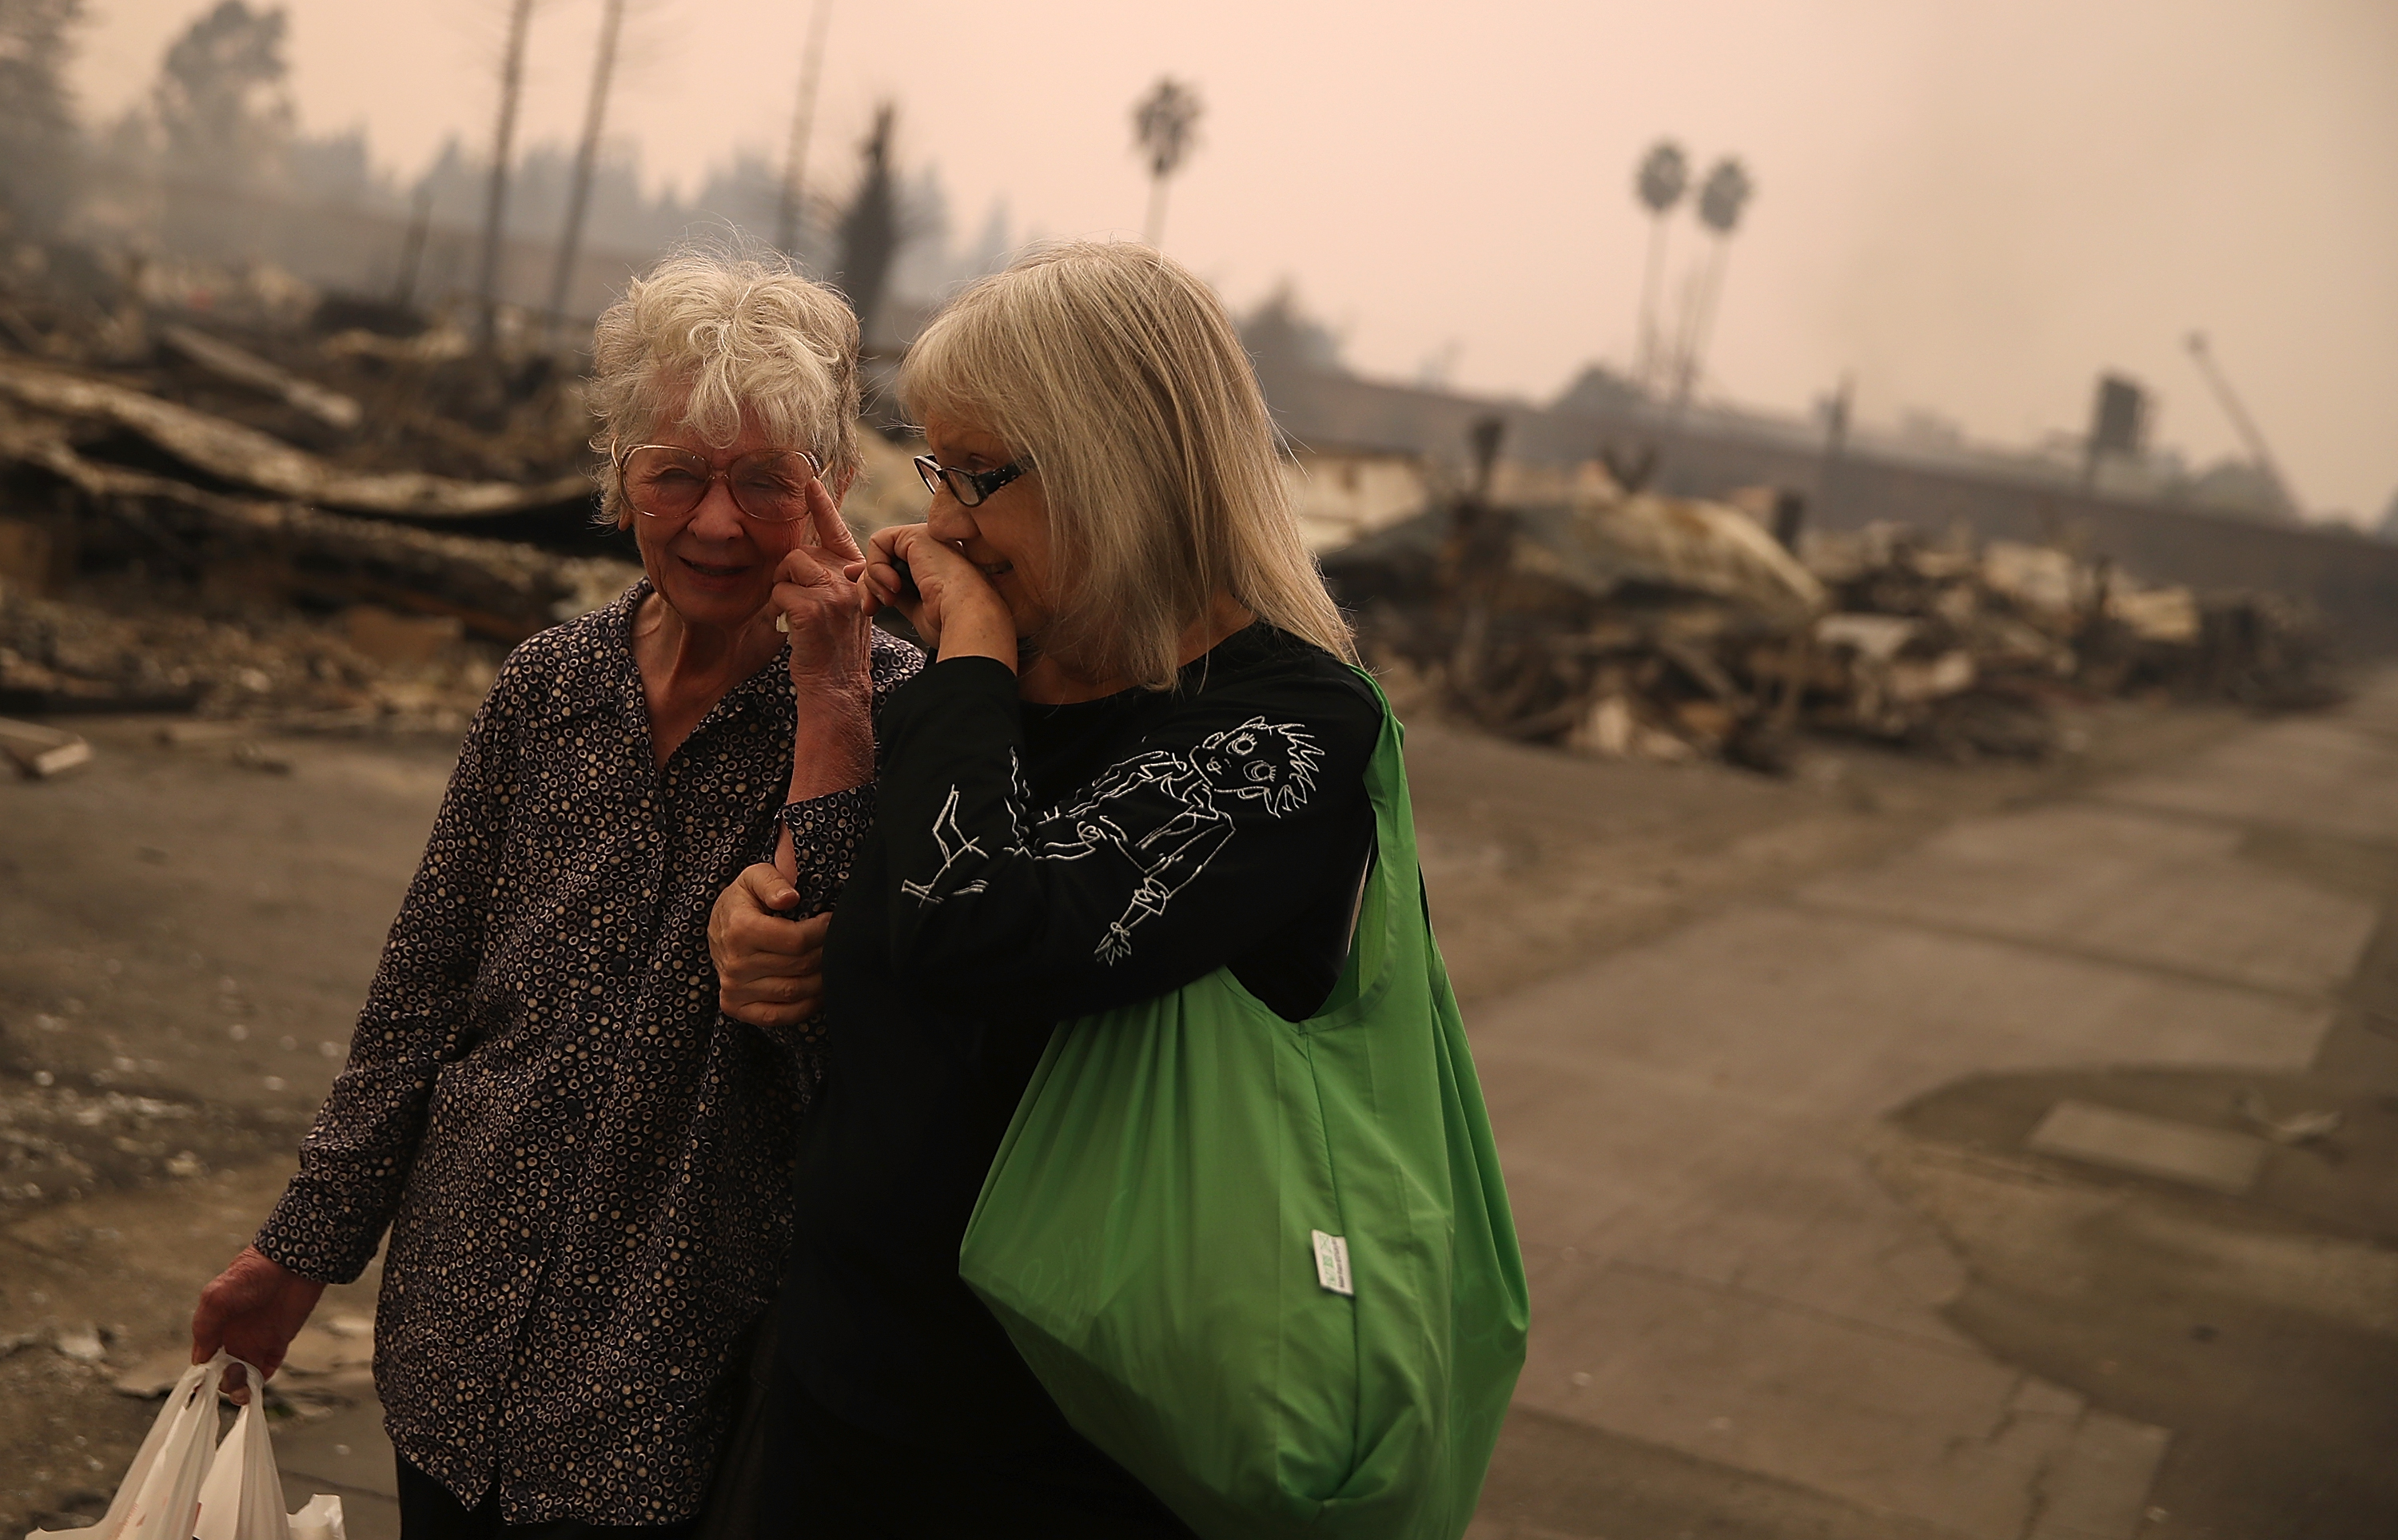 <div class='meta'><div class='origin-logo' data-origin='none'></div><span class='caption-text' data-credit='Justin Sullivan/Getty Images'>Residents walk through the fire damaged Journey's End Mobile Home Park on October 9, 2017 in Santa Rosa, California.</span></div>